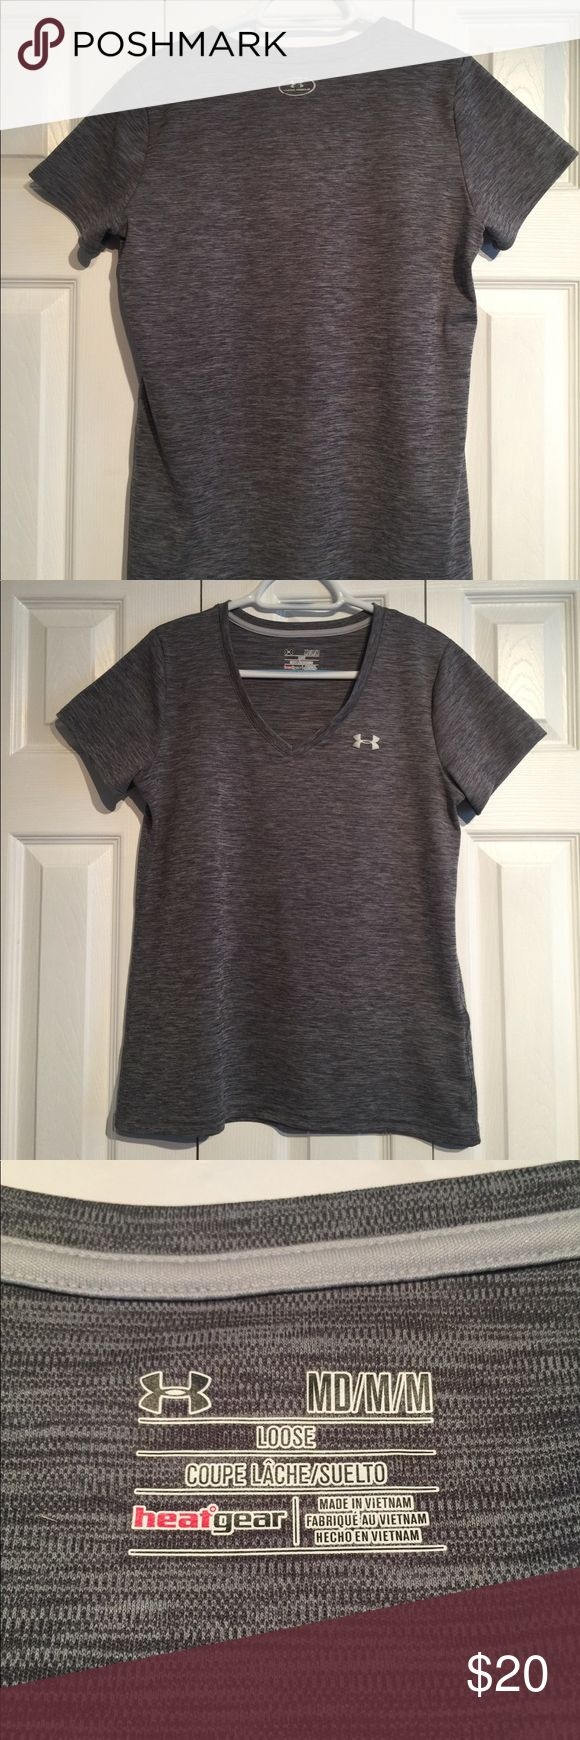 Women's Heatgear Loose Fit Shirt Black, v-neck. Heatgear. Care taw removed, but I wash under Armour clothes in cold water, permanent press cycle. Under Armour Tops Tees - Short Sleeve